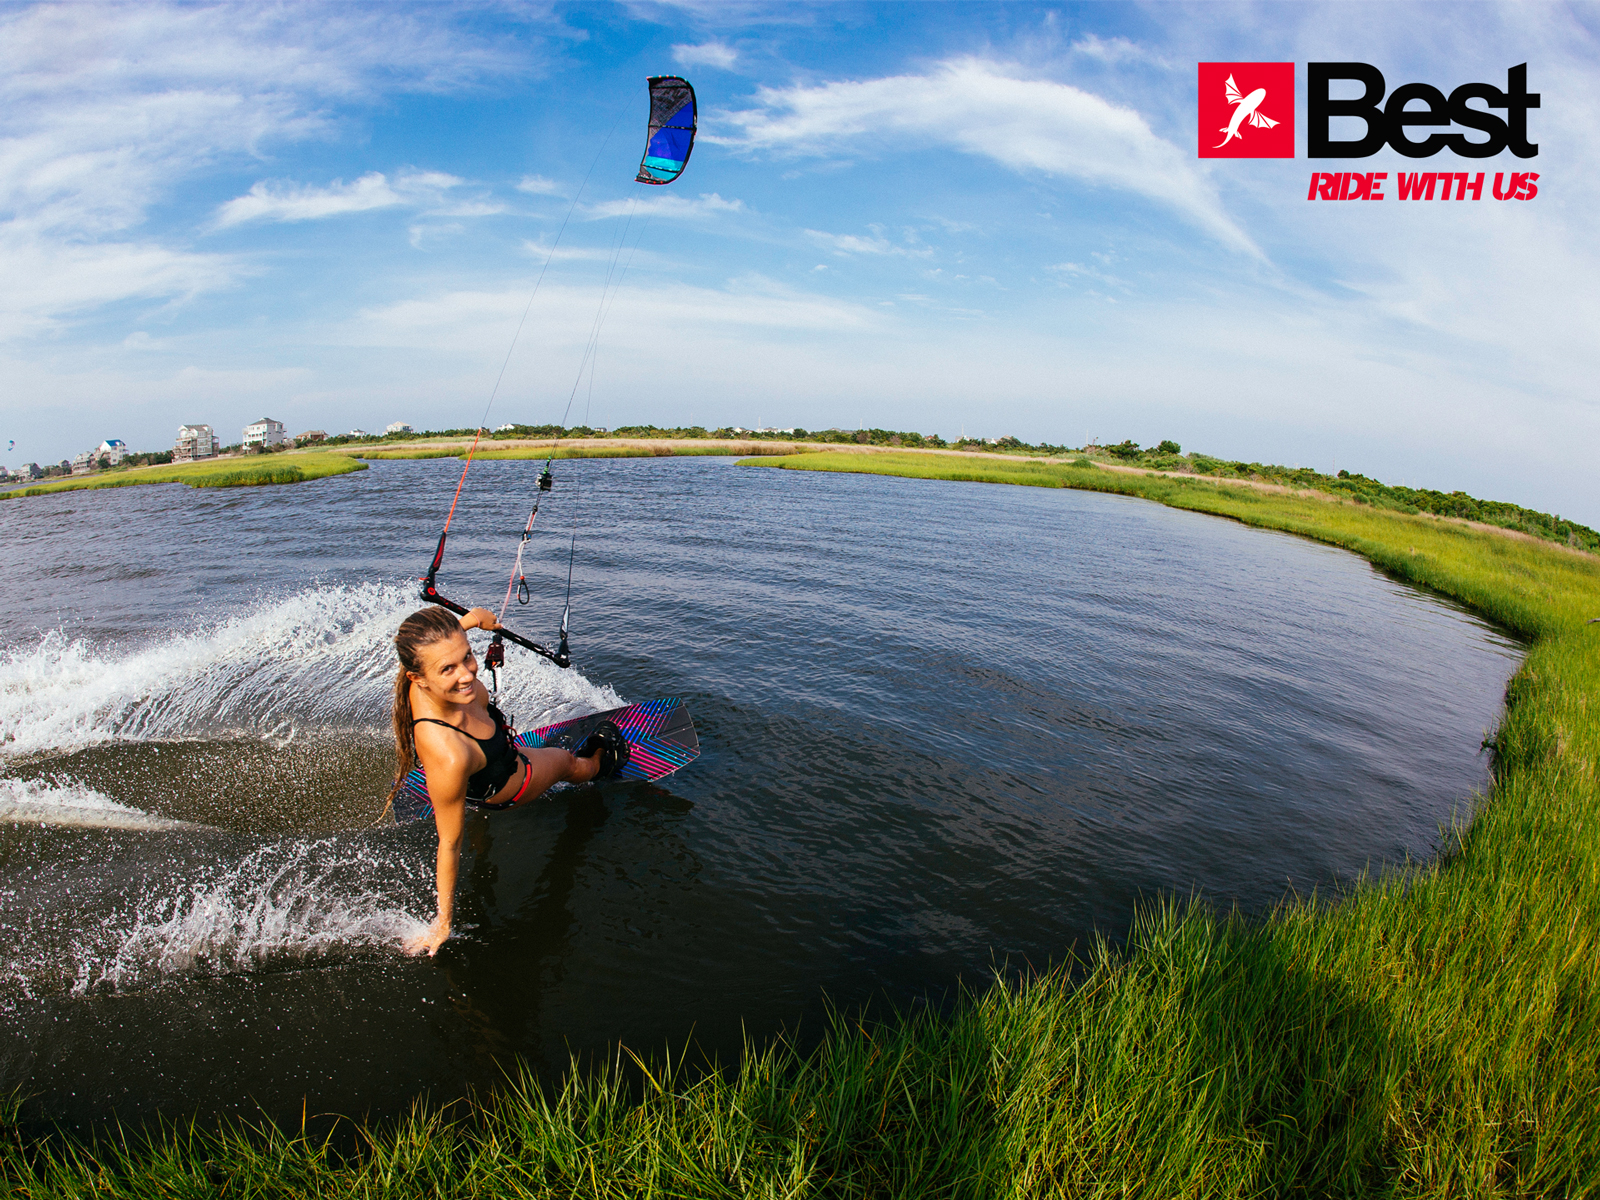 kitesurf wallpaper image - Cruising along the grass with the 2015 Best Kiteboarding TS kite - in resolution: Standard 4:3 1600 X 1200